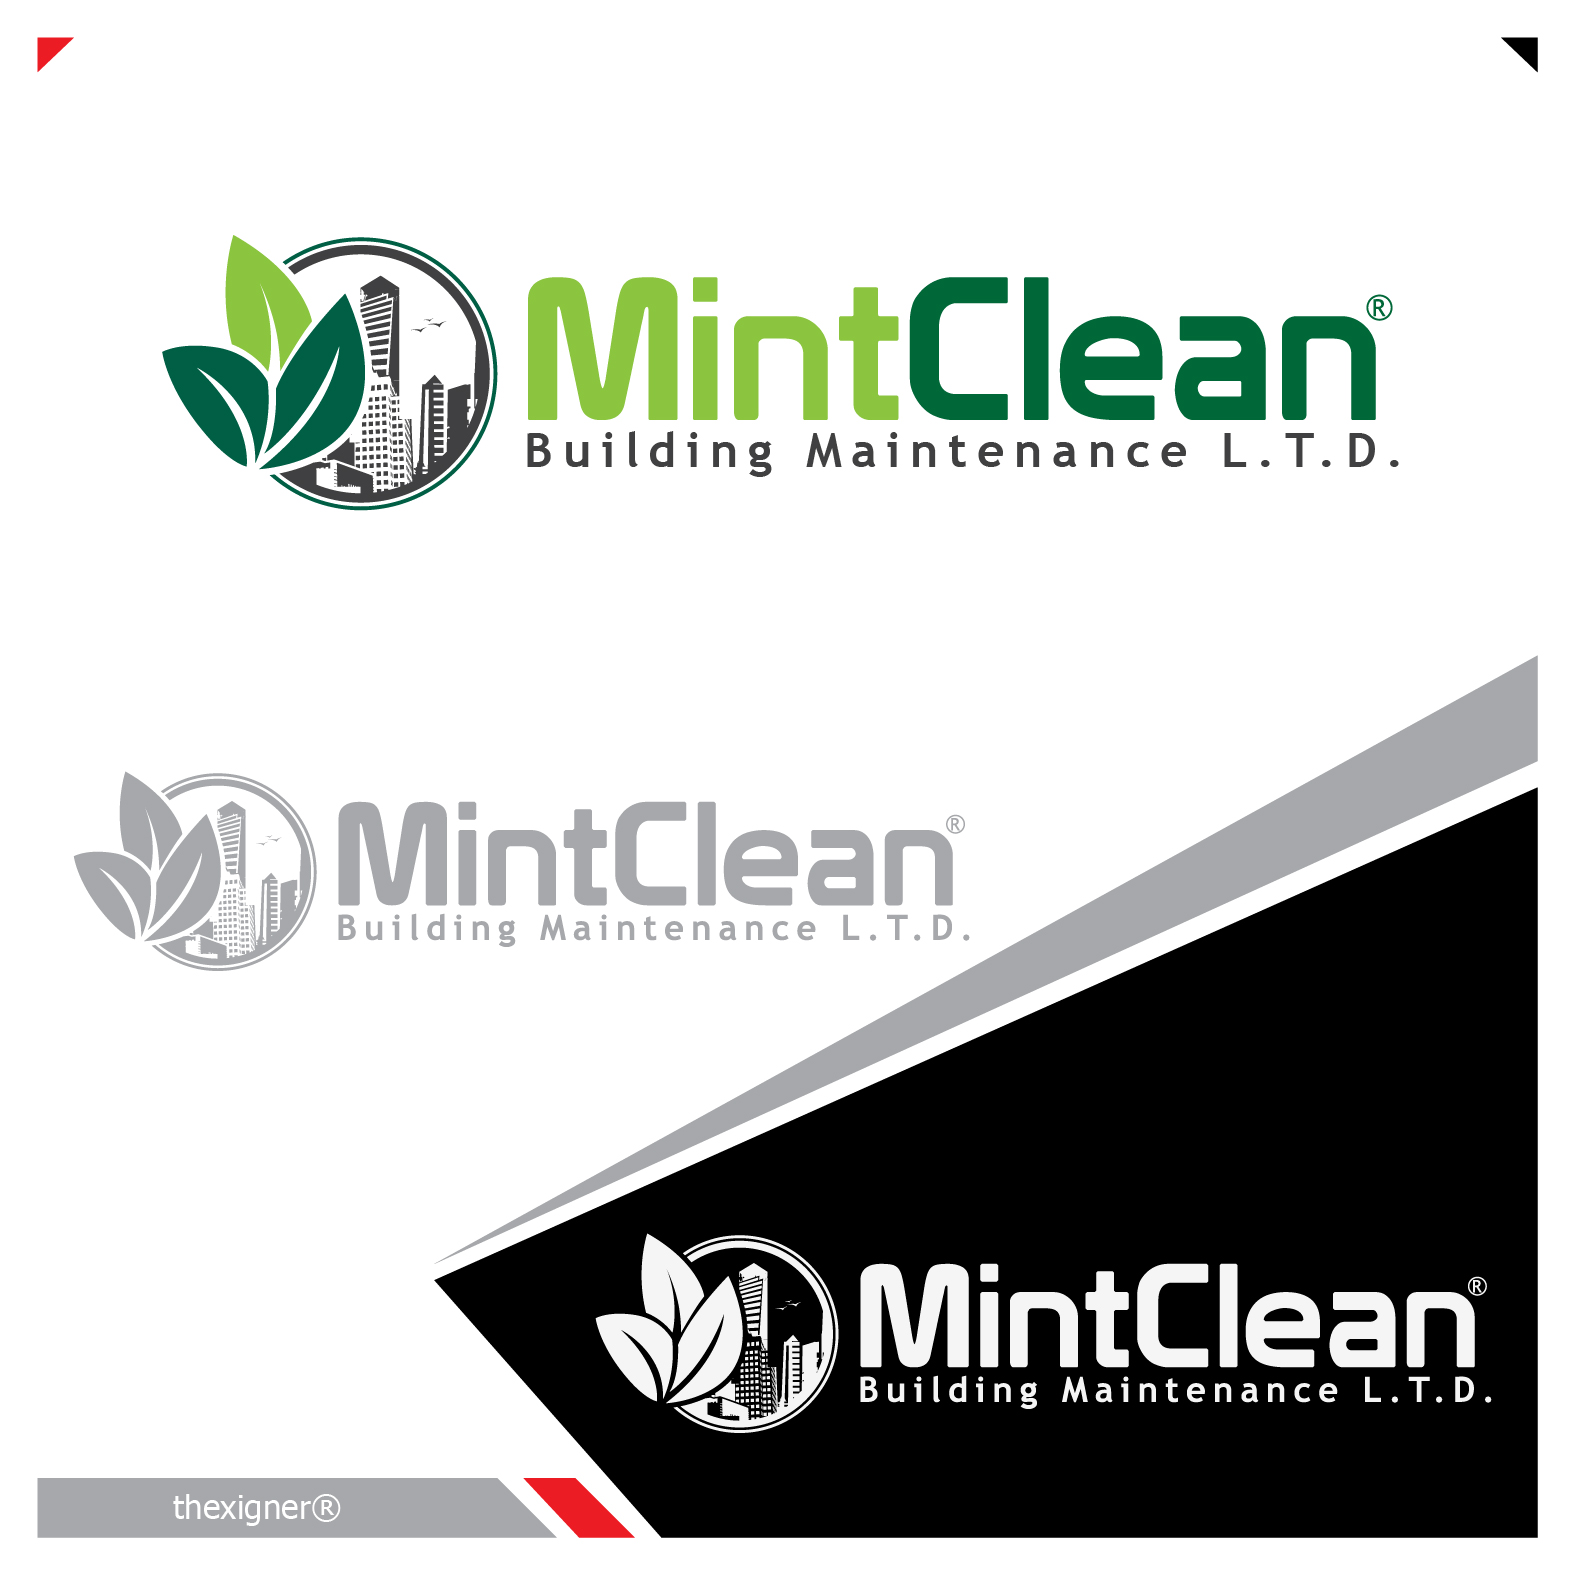 Logo Design by lagalag - Entry No. 69 in the Logo Design Contest MintClean Building Maintenance Ltd. Logo Design.